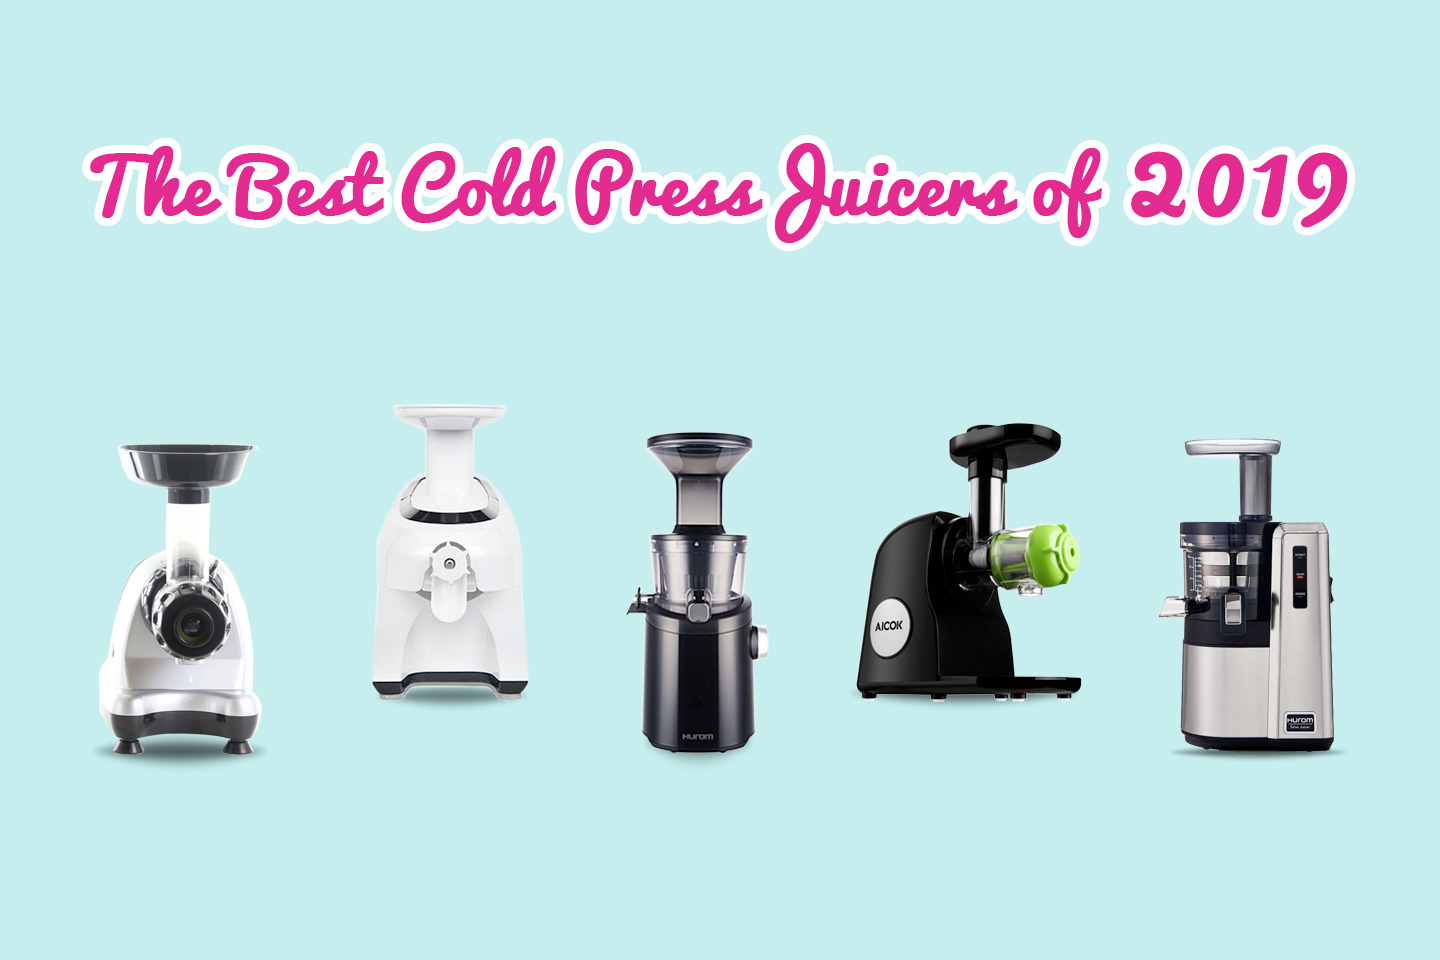 The Best Cold Press Juicers of 2019 | Hearty Blends